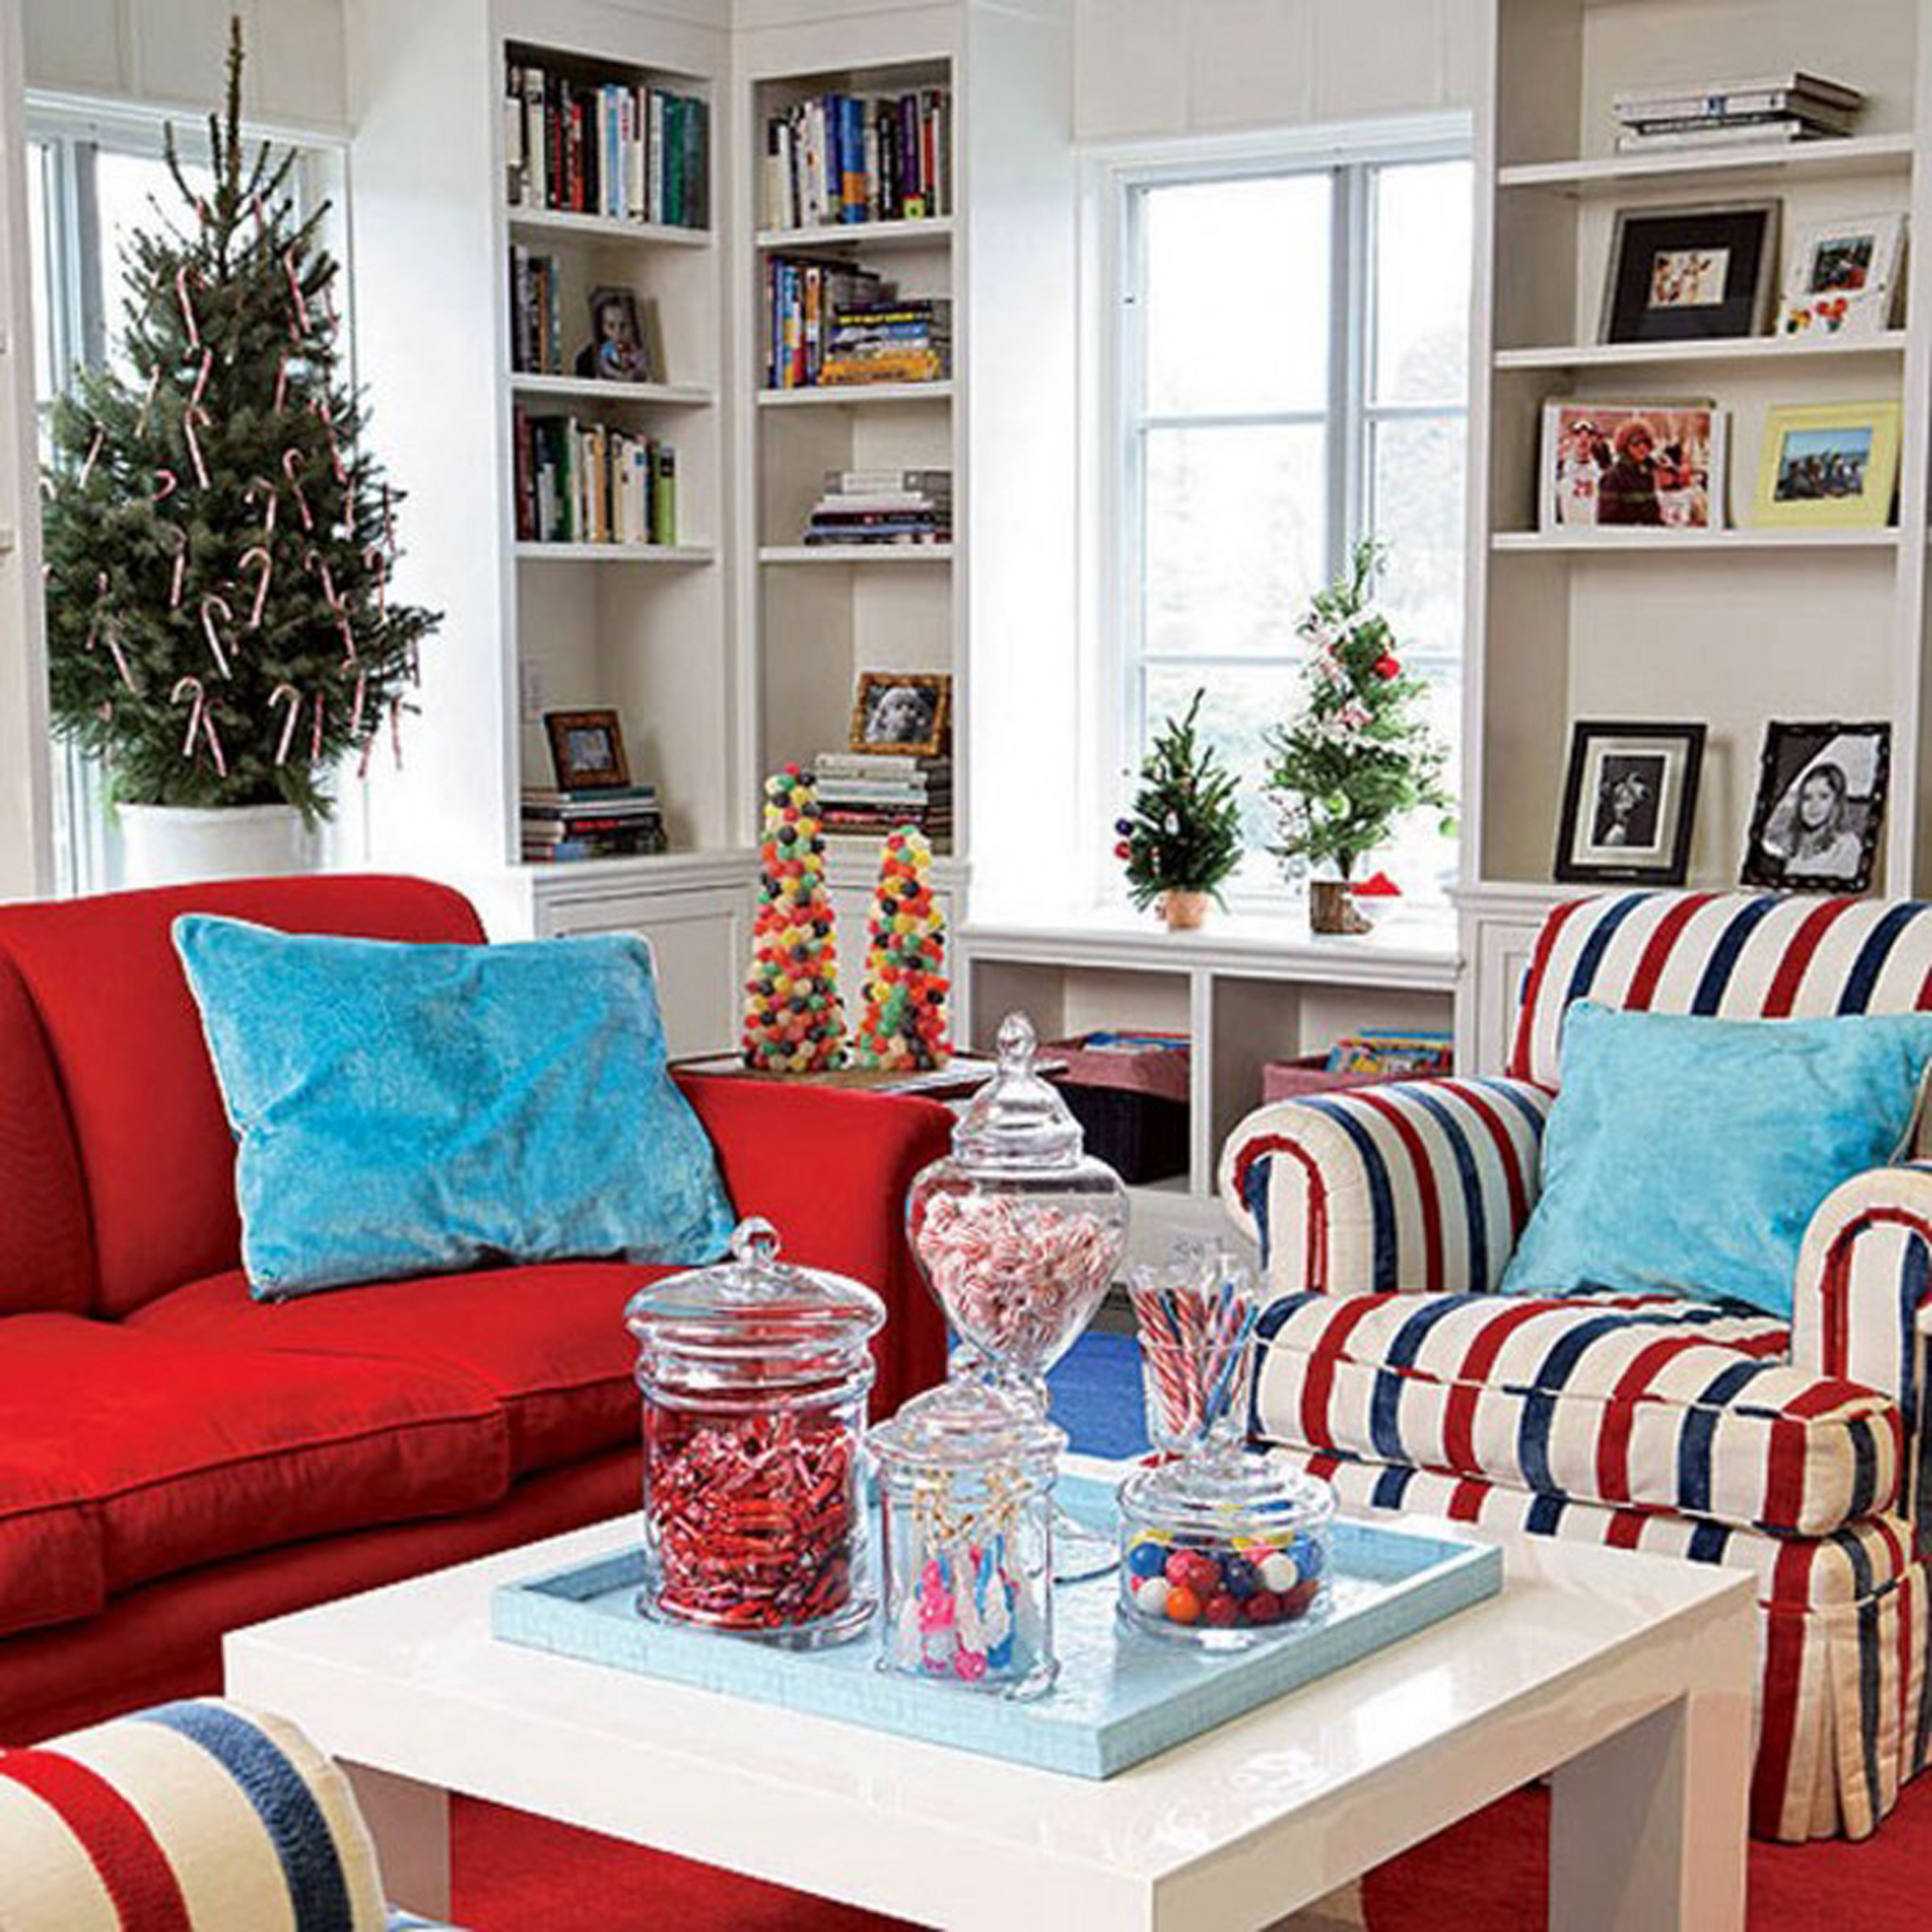 Luxury Great Red And Blue Living Room Decorating Idea For Christmas Event Graceful Christmas Living Room Inspiration (Image 62 of 123)